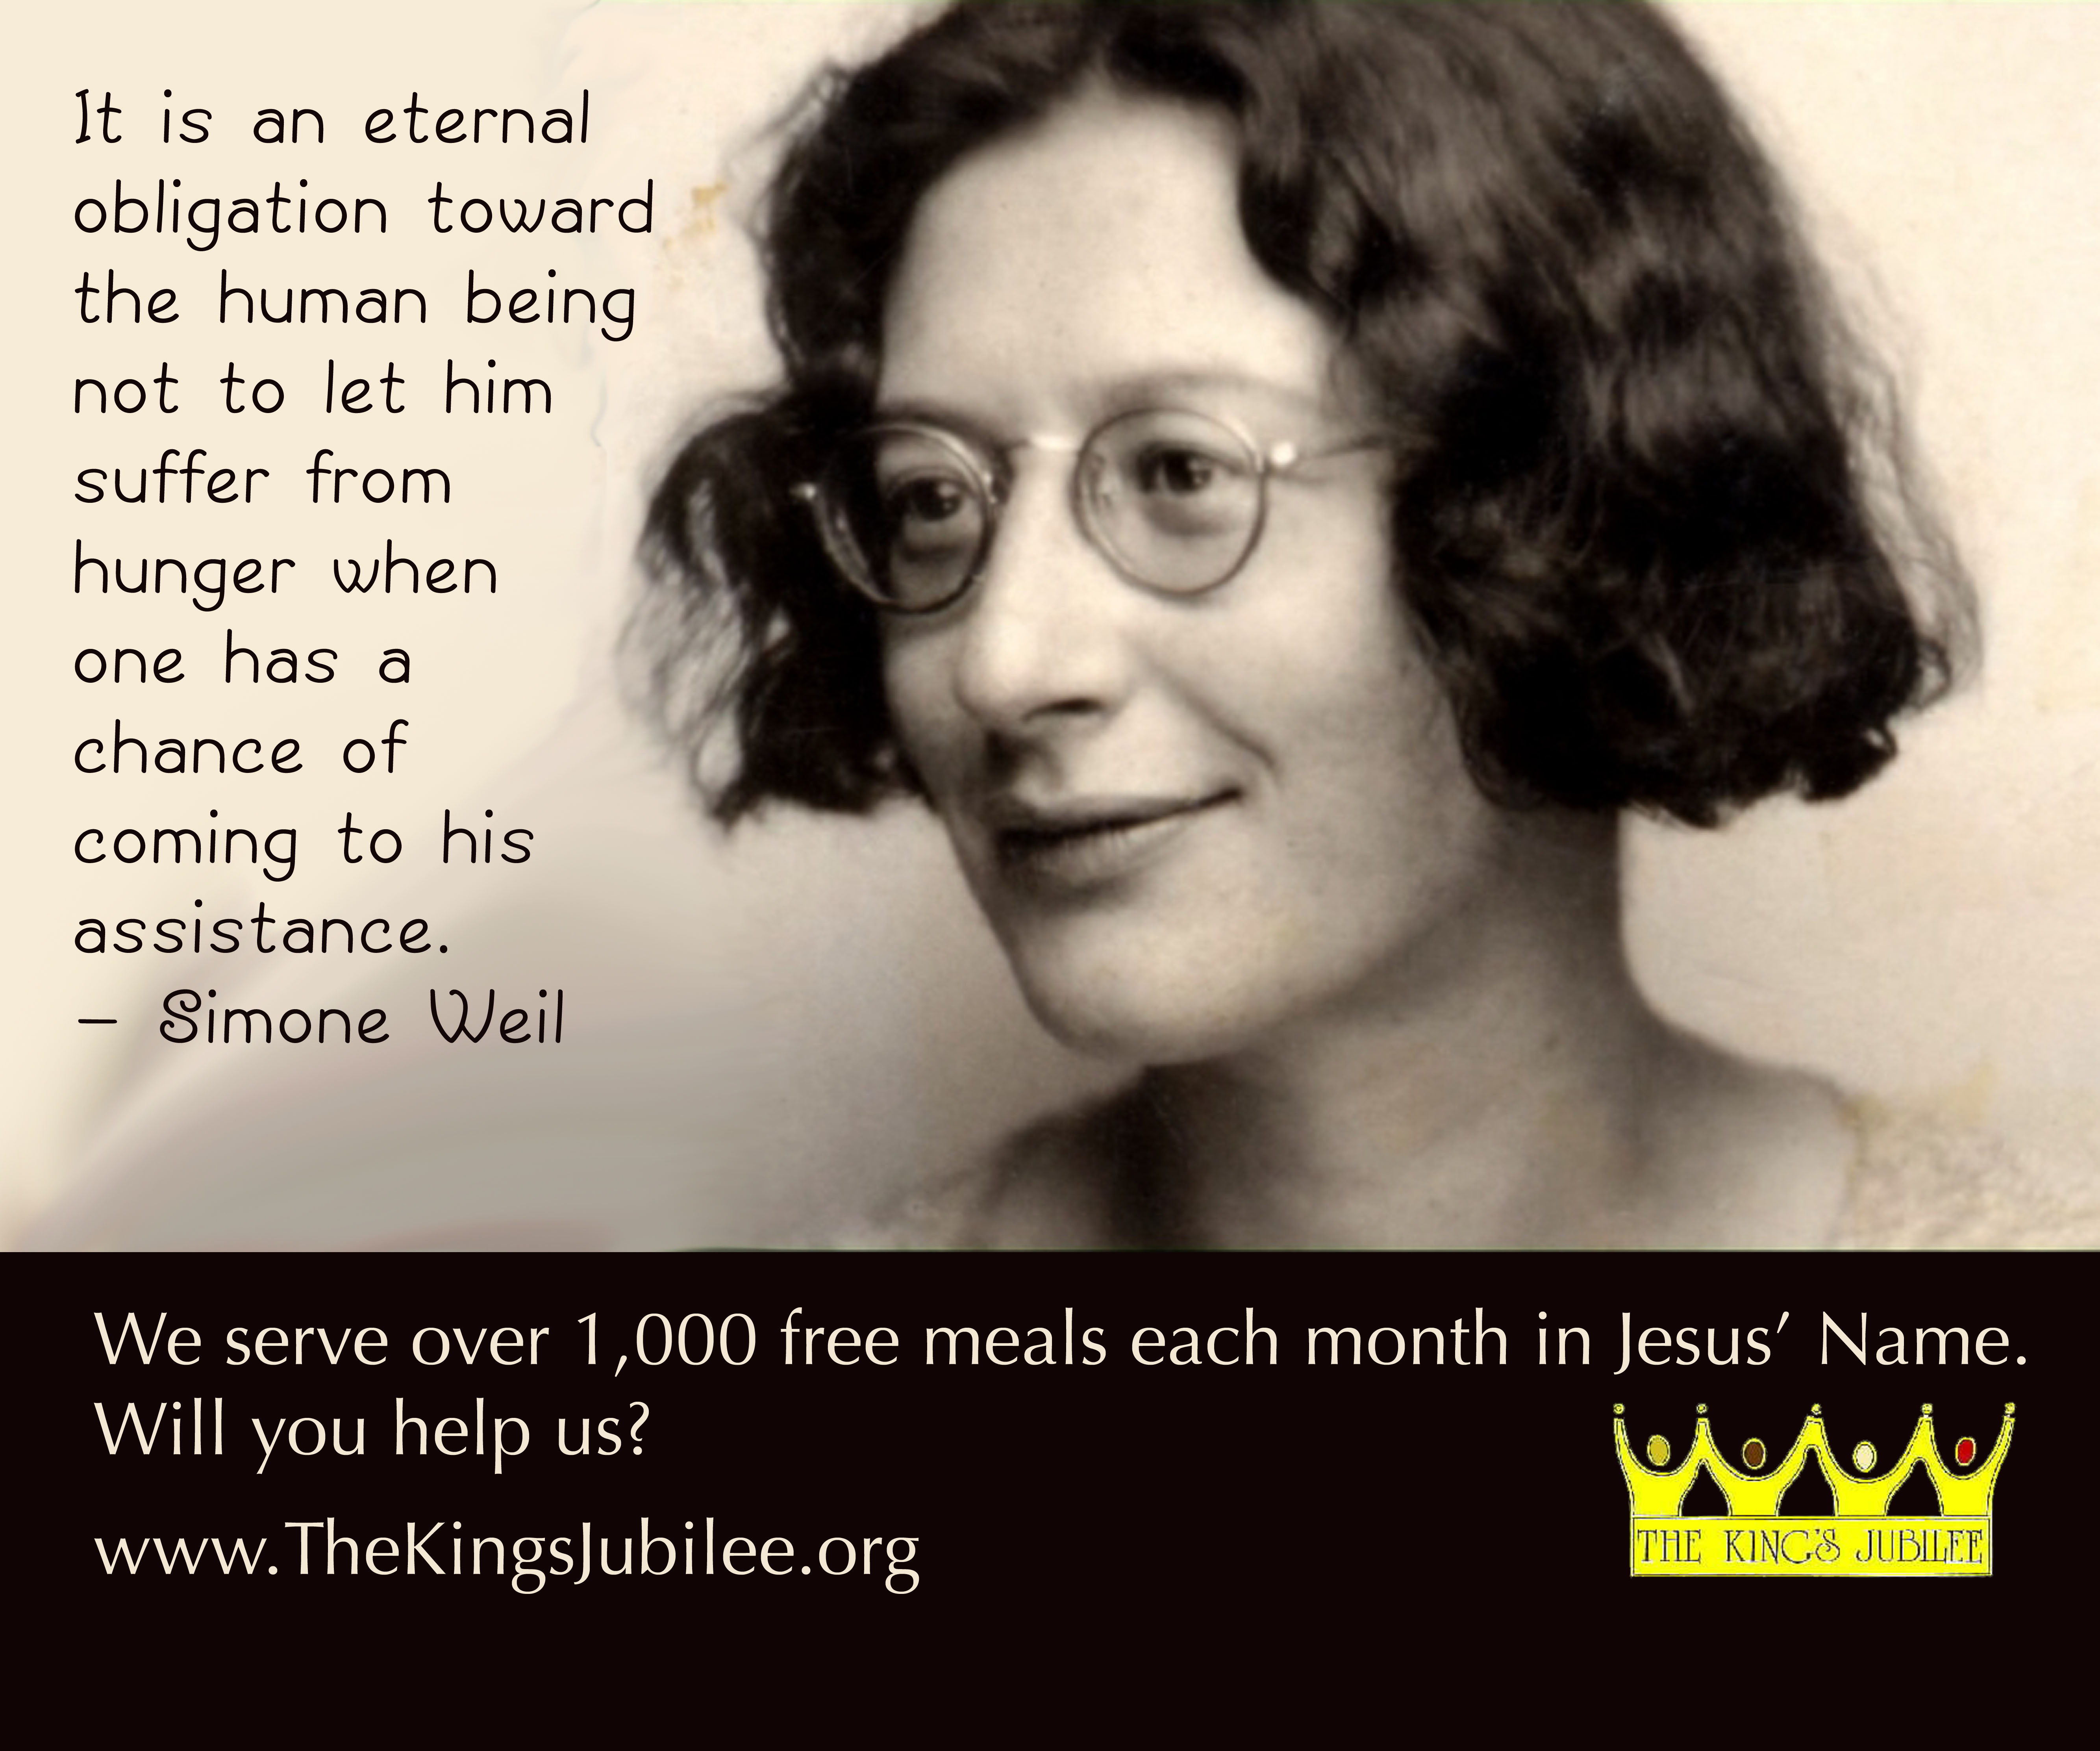 Simone Weil's quote #6